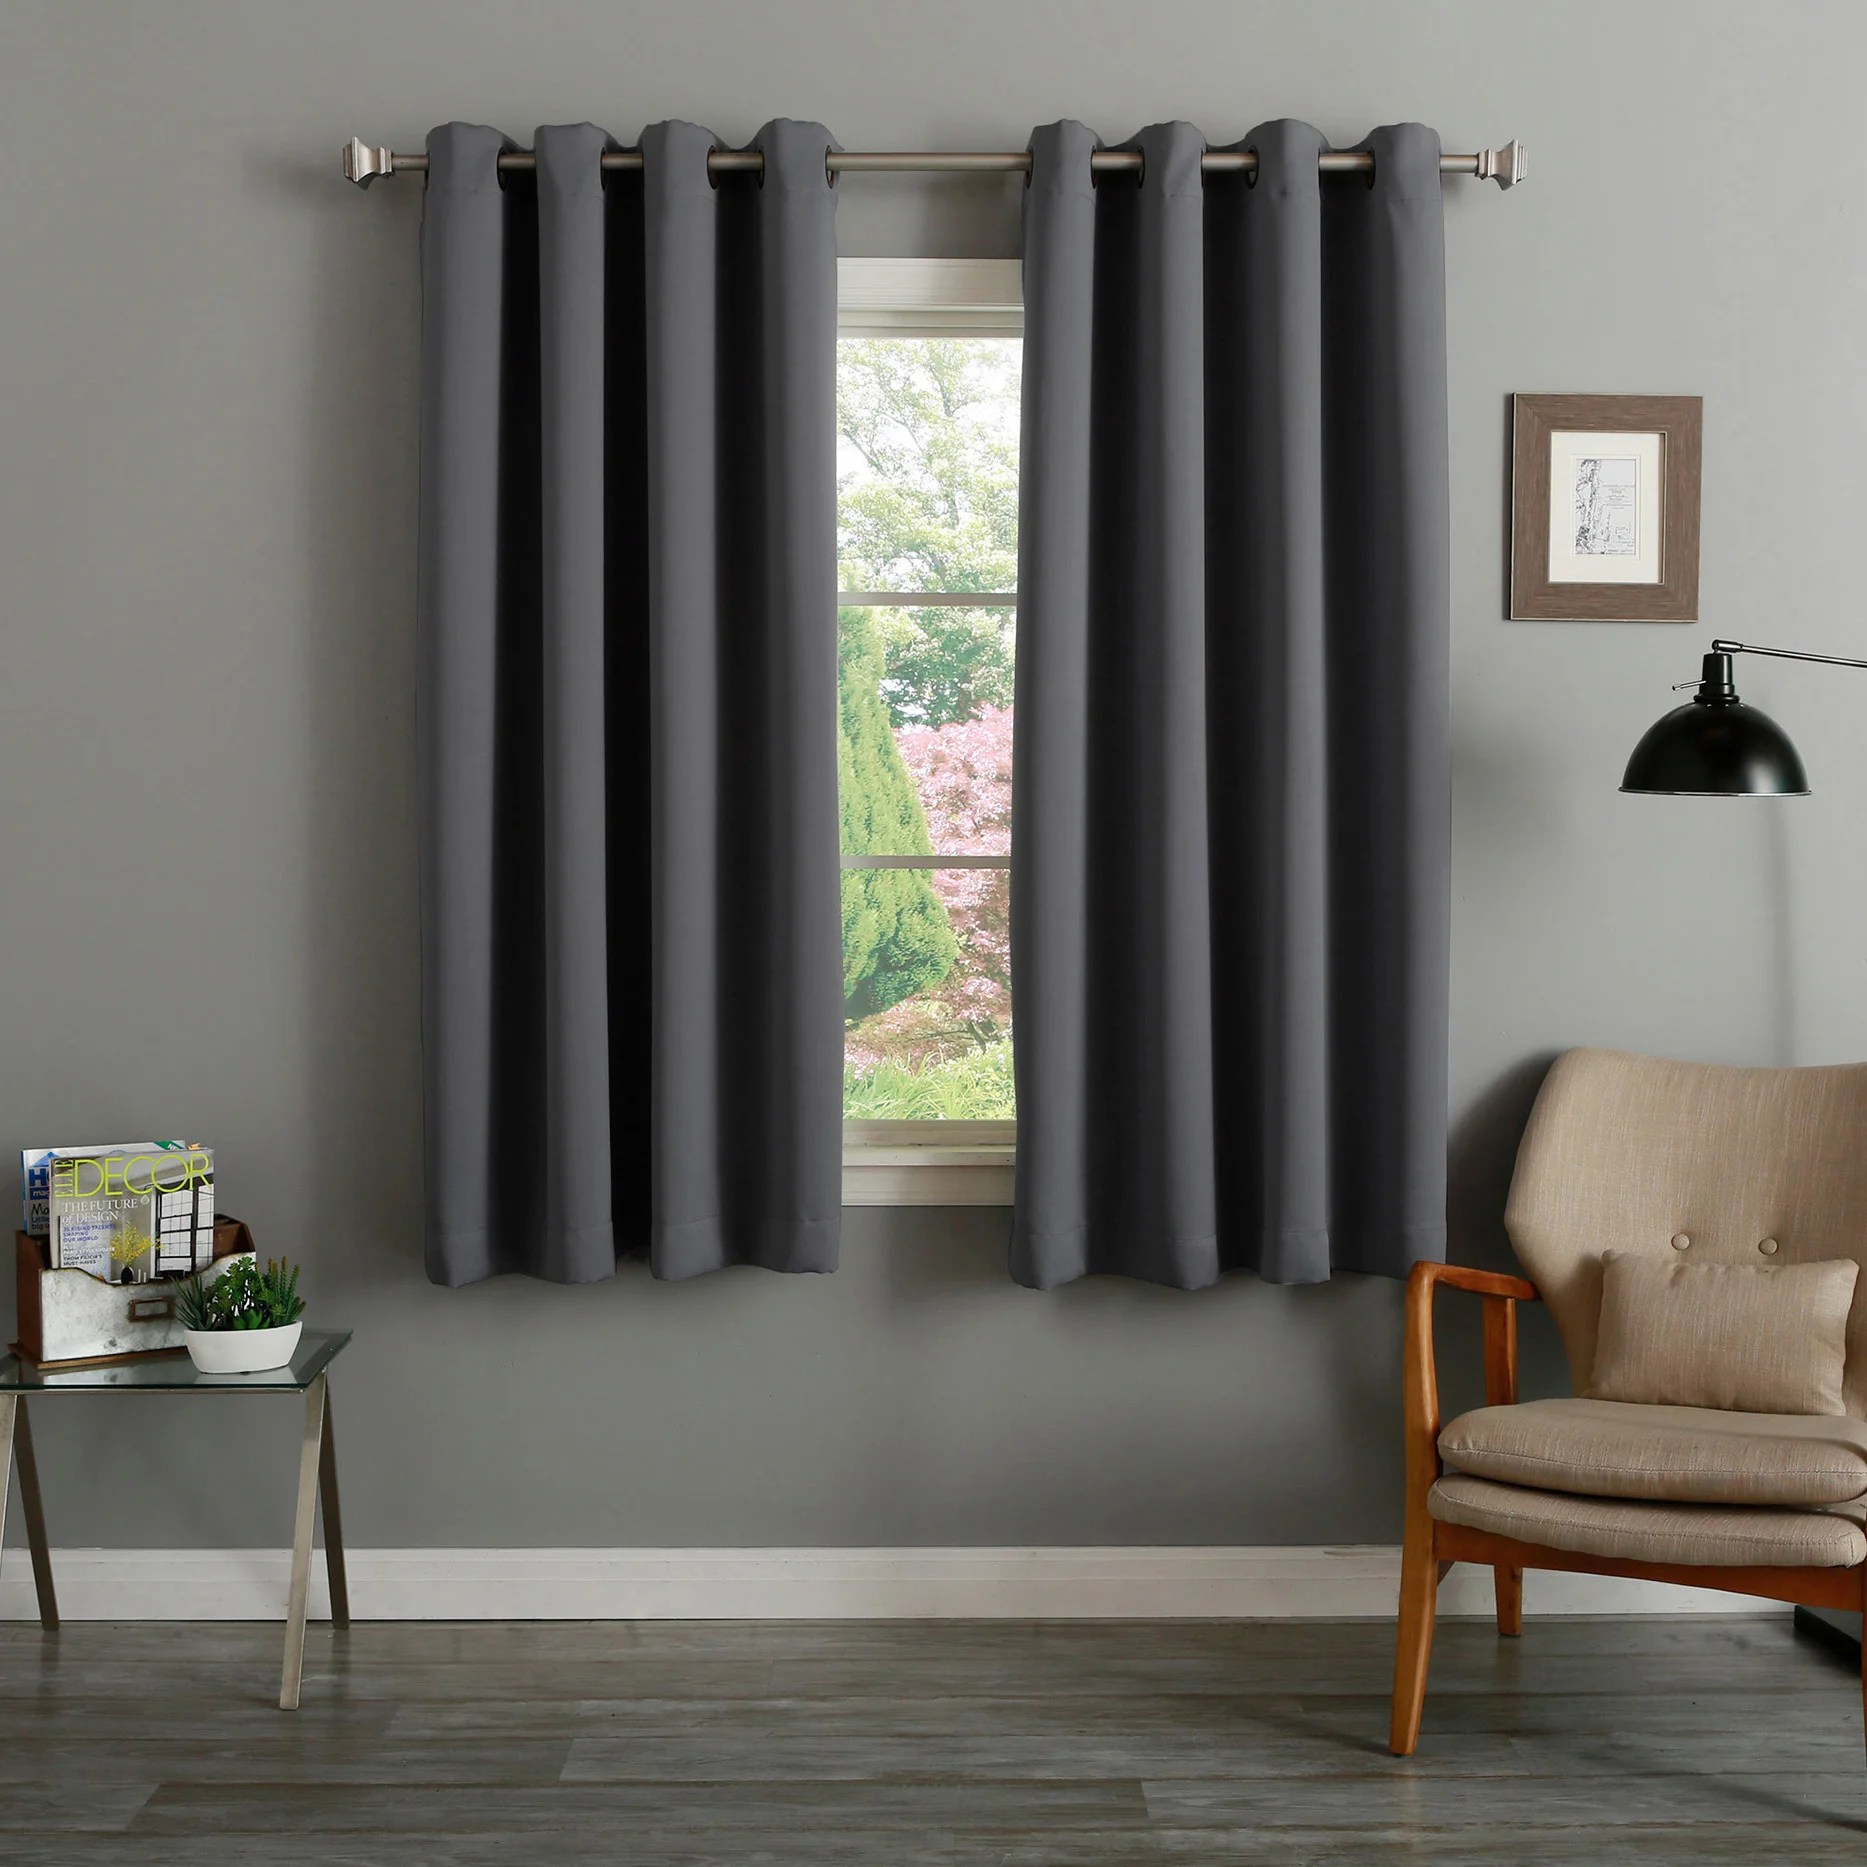 104 Inch Curtains Buy 64 Inches Curtains Drapes Online At Overstock Our Best